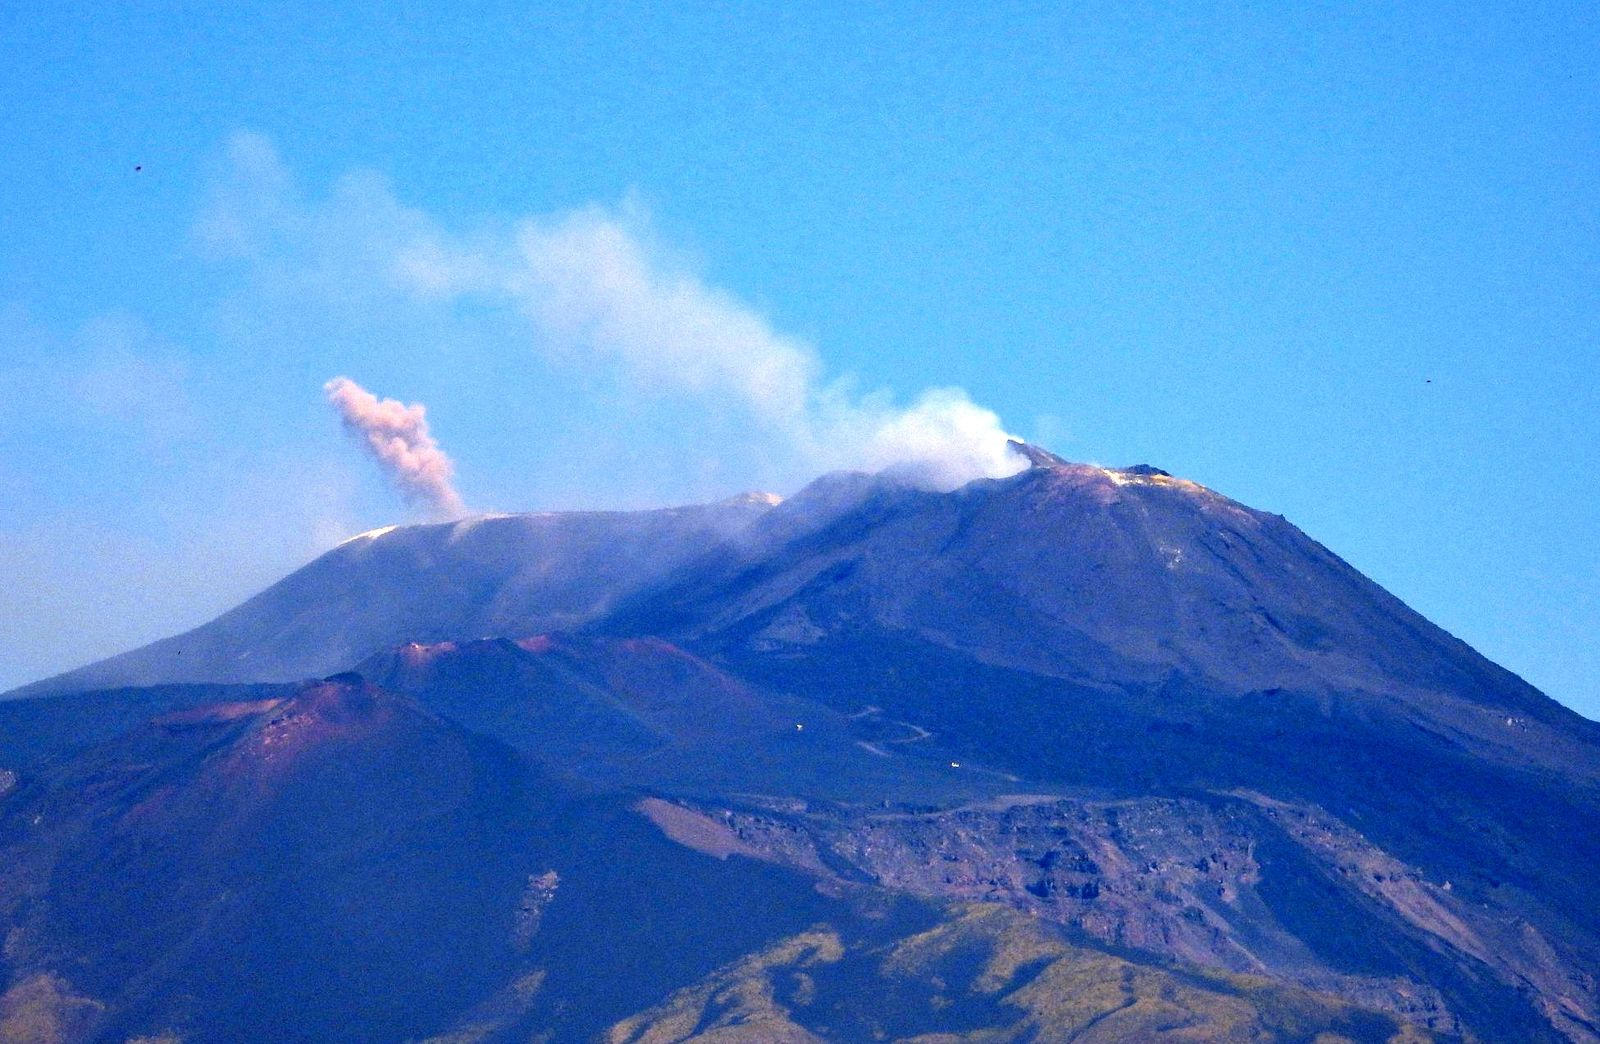 Etna - plumes emitted by Voragine and the saddle cone of the NSEC on 07.30.2020 / 10:50 a.m.